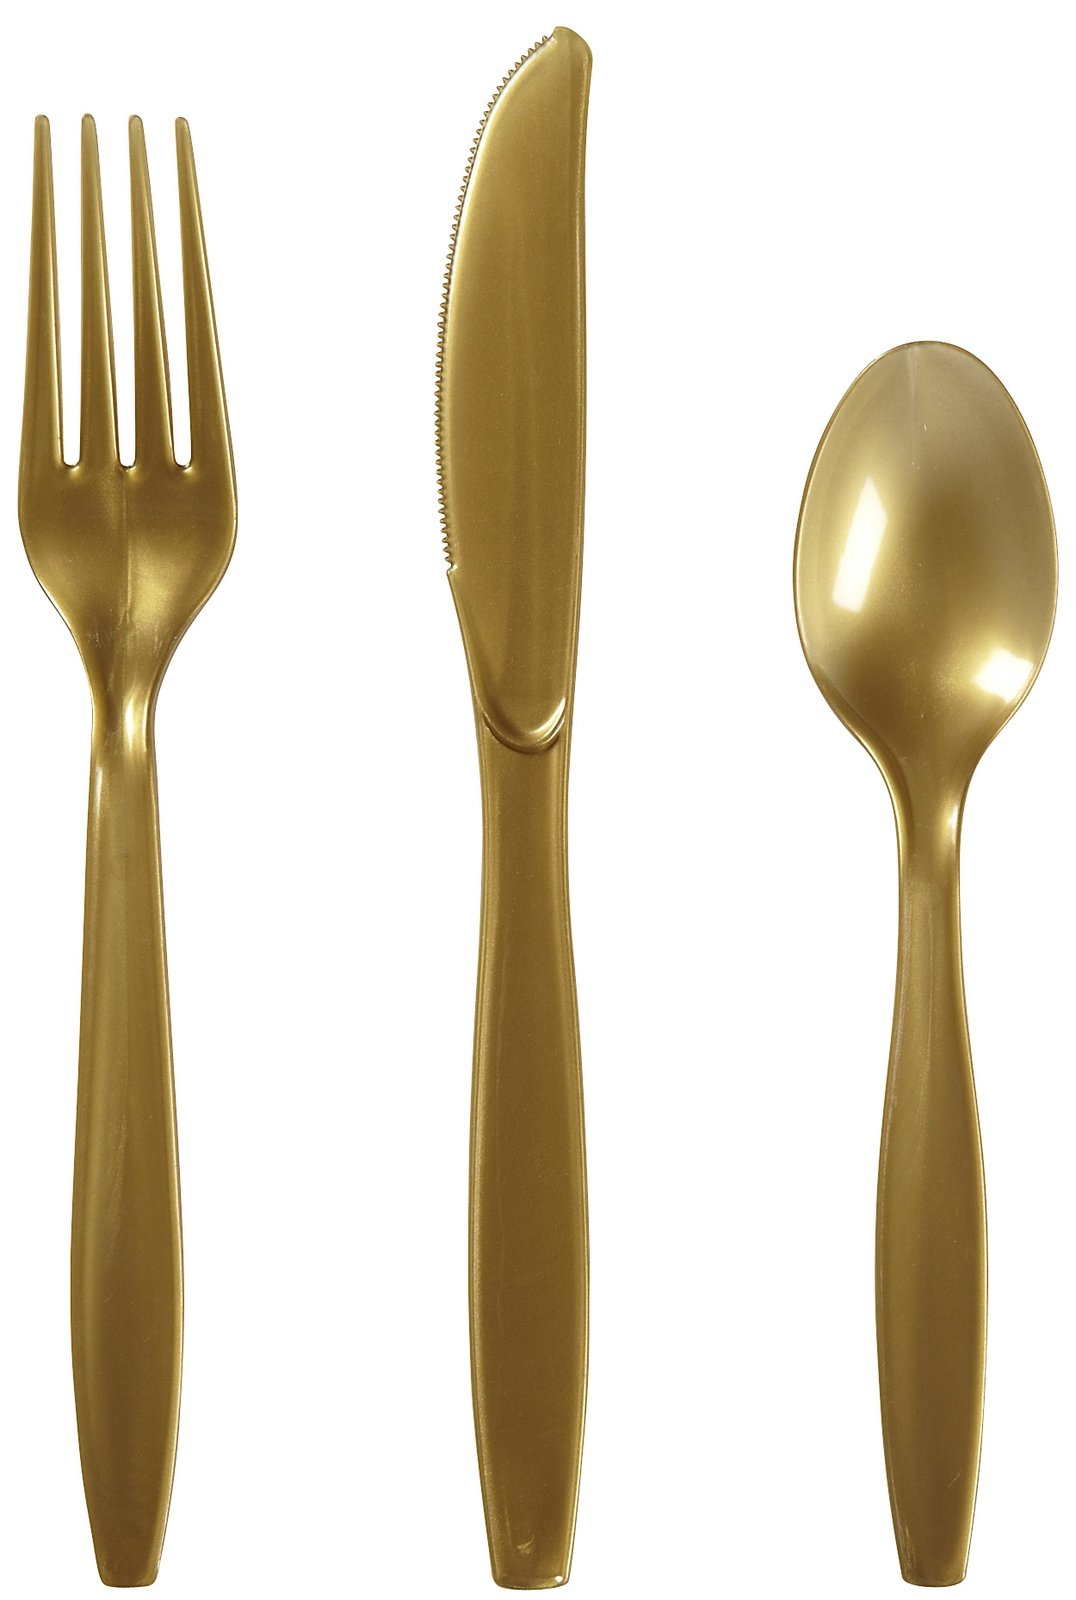 Adorable gold plastic silverware with glitters gold plastic silverware for serverware ideas